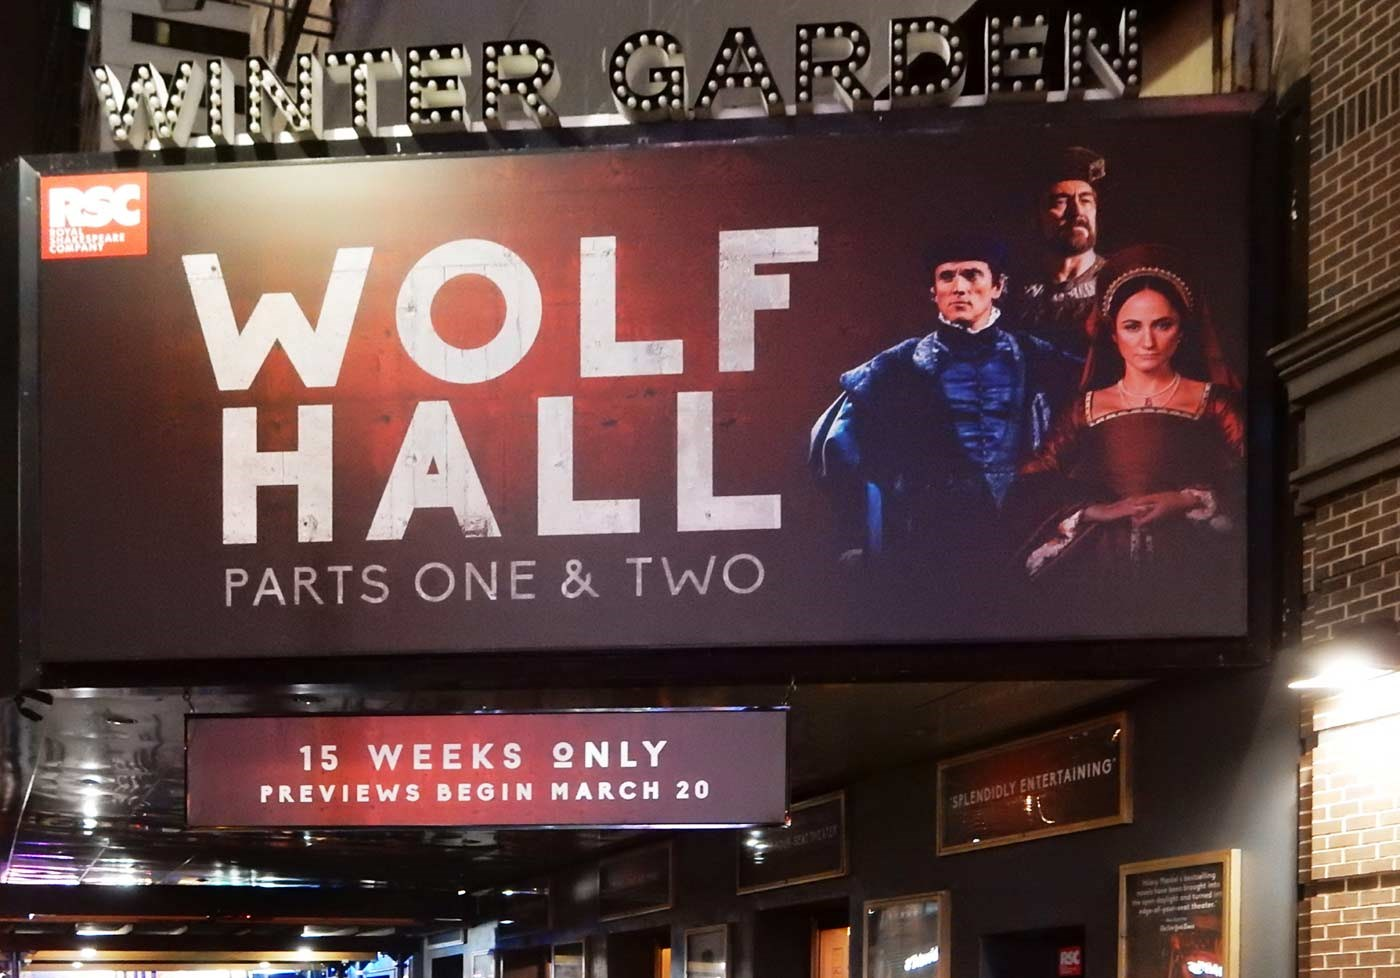 'Wolf Hall Parts One & Two' at the Winter Garden Theatre